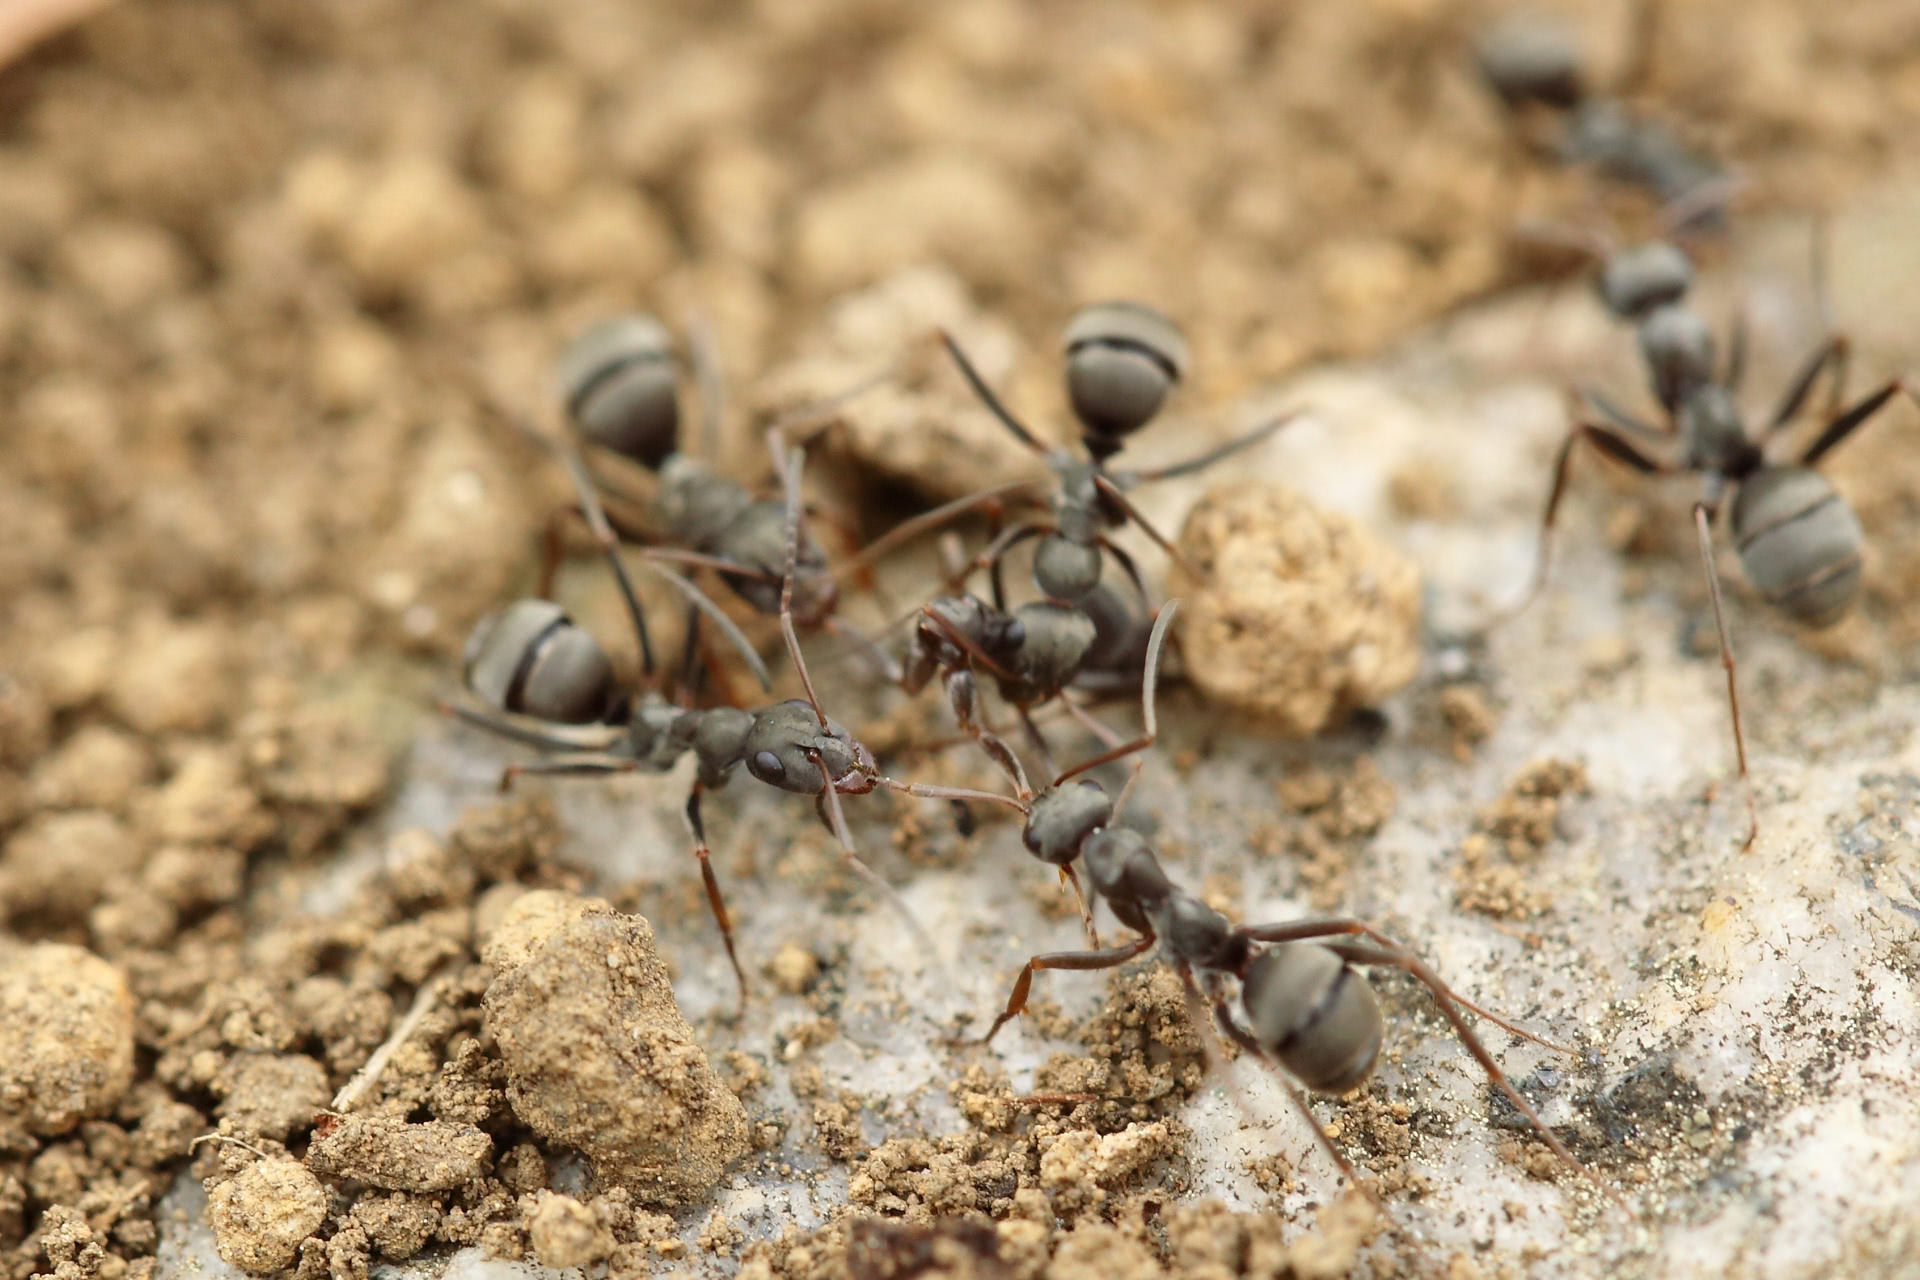 Pictures of ants on the dirt.